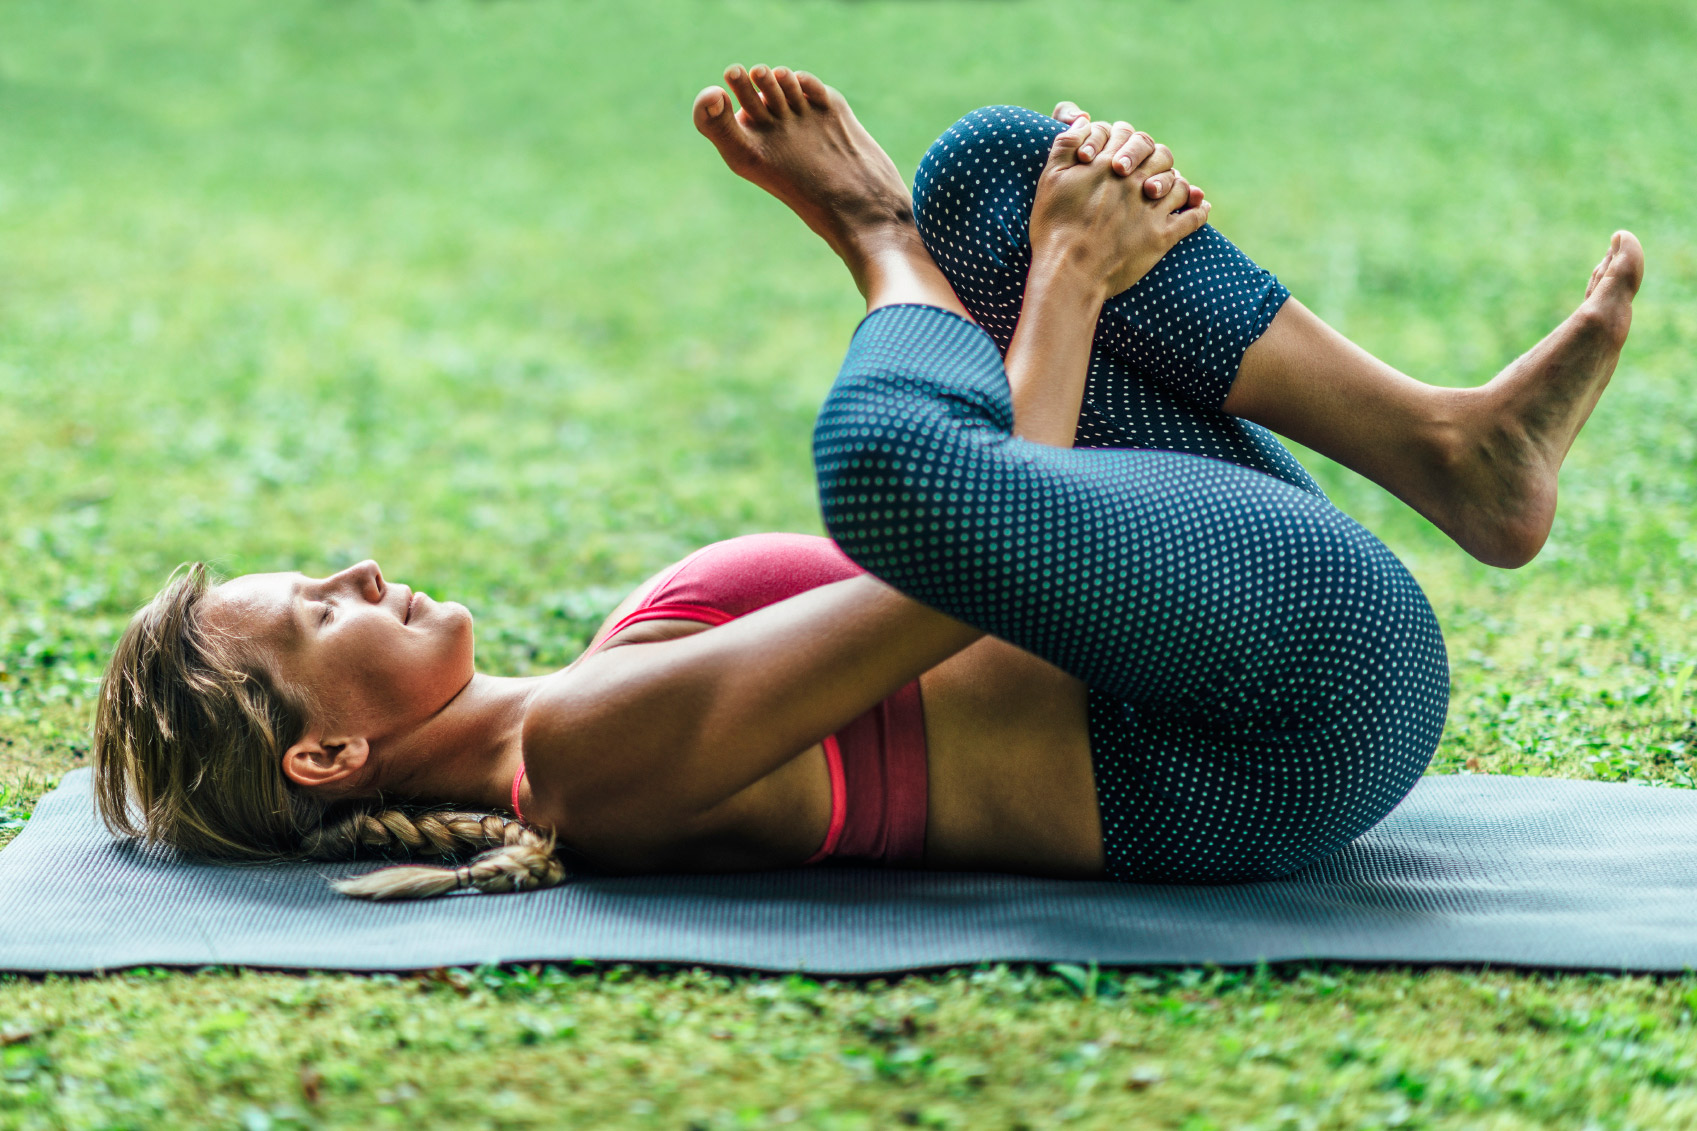 woman lying on yoga mat on grass in eye of the needle pose